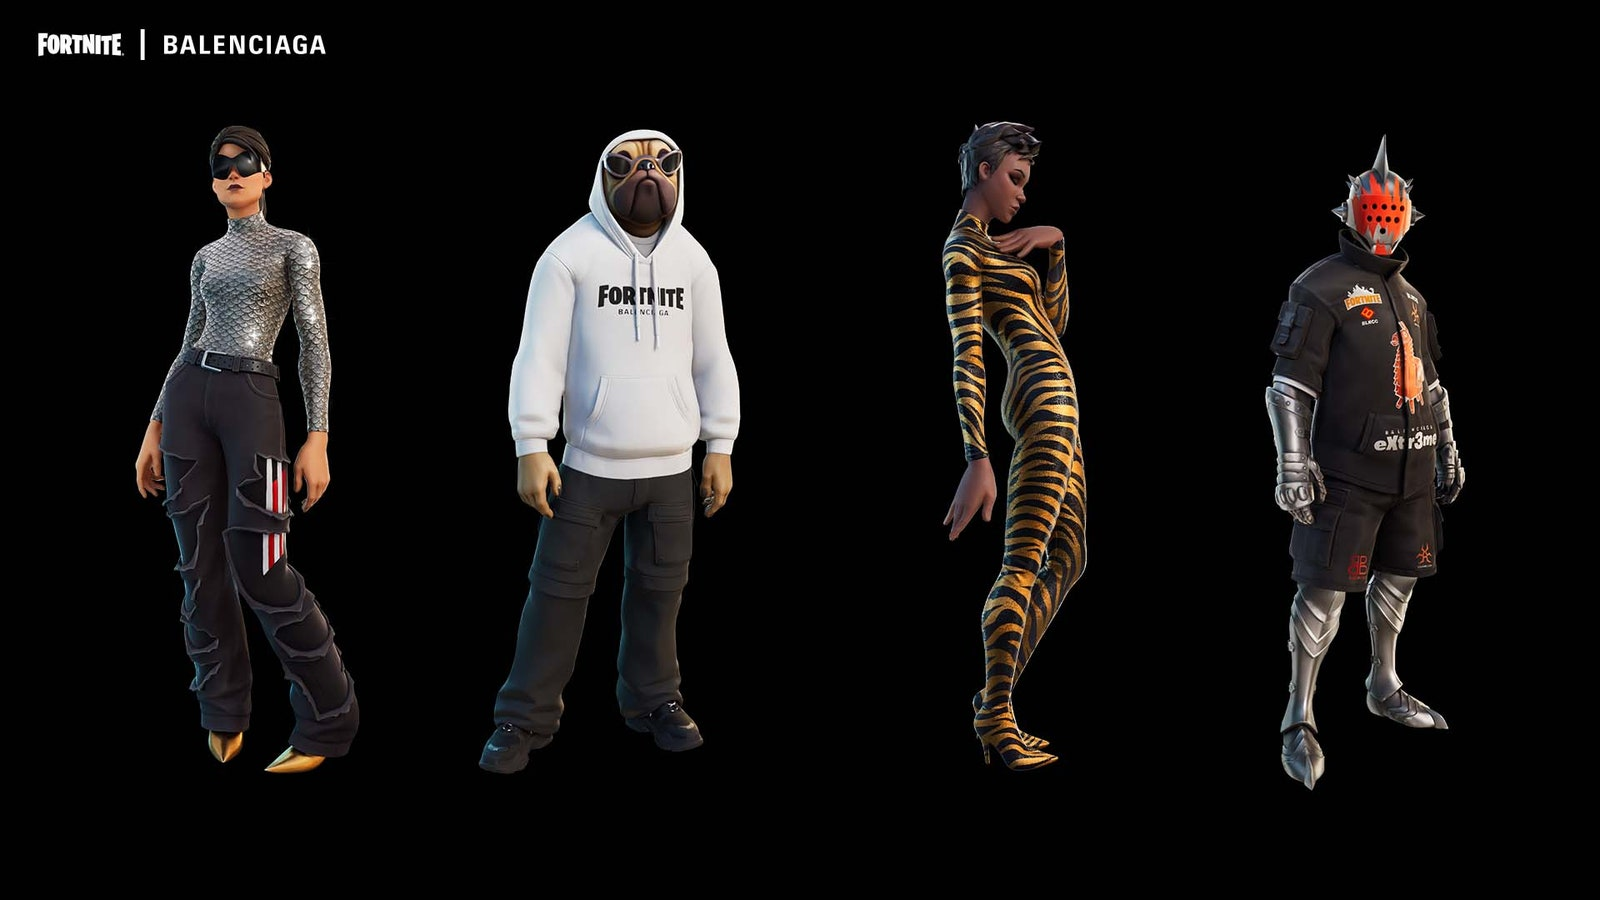 Balenciaga partners with Epic Games for Fortnite in the Metaverse